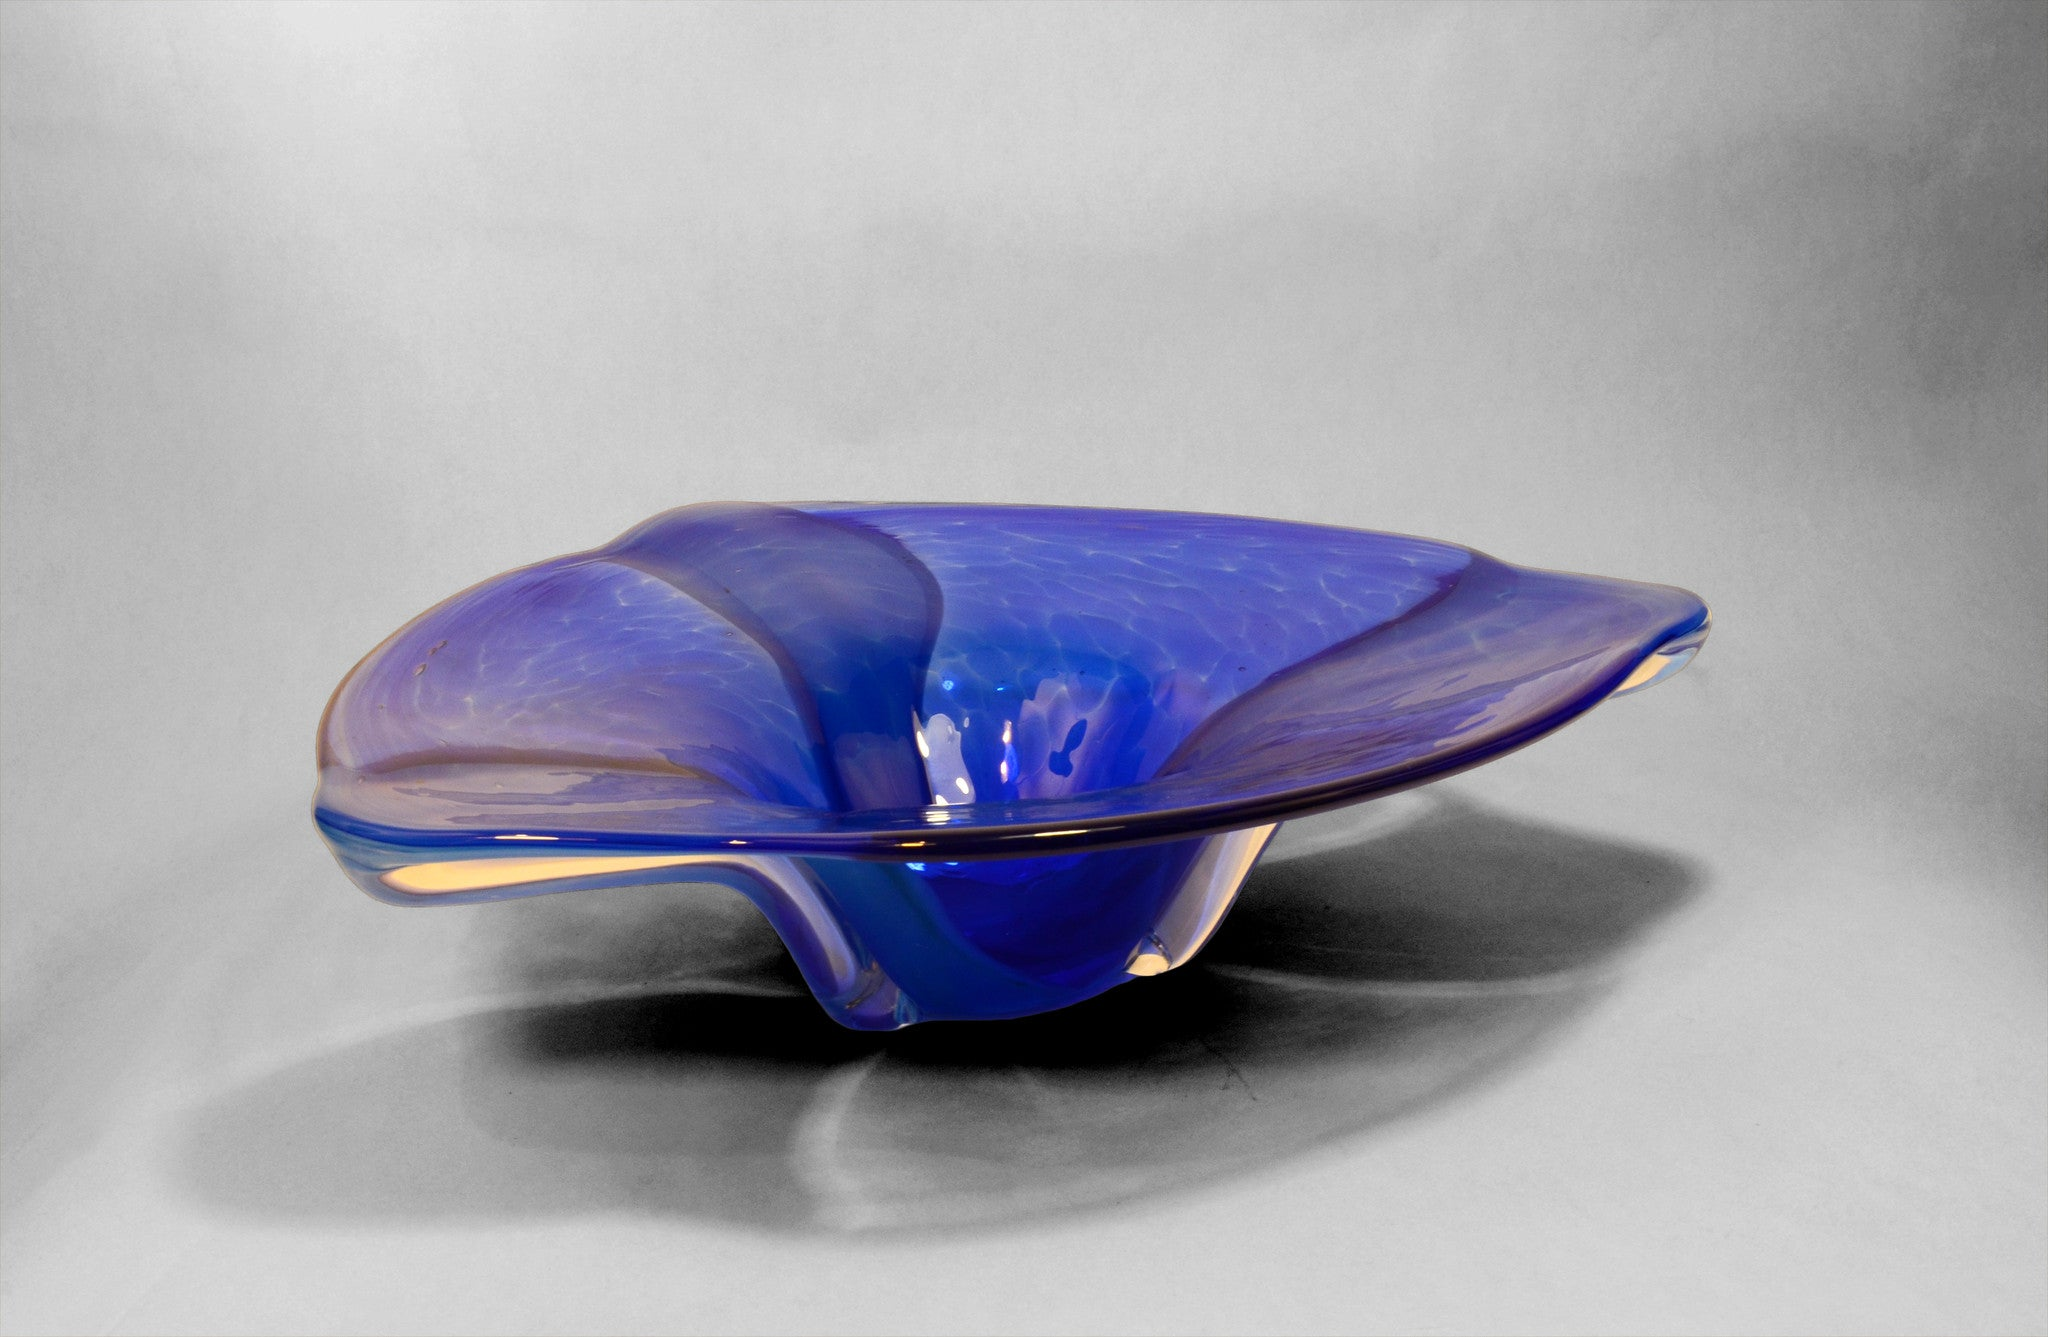 Blue triangular shaped murano bowl (side view)